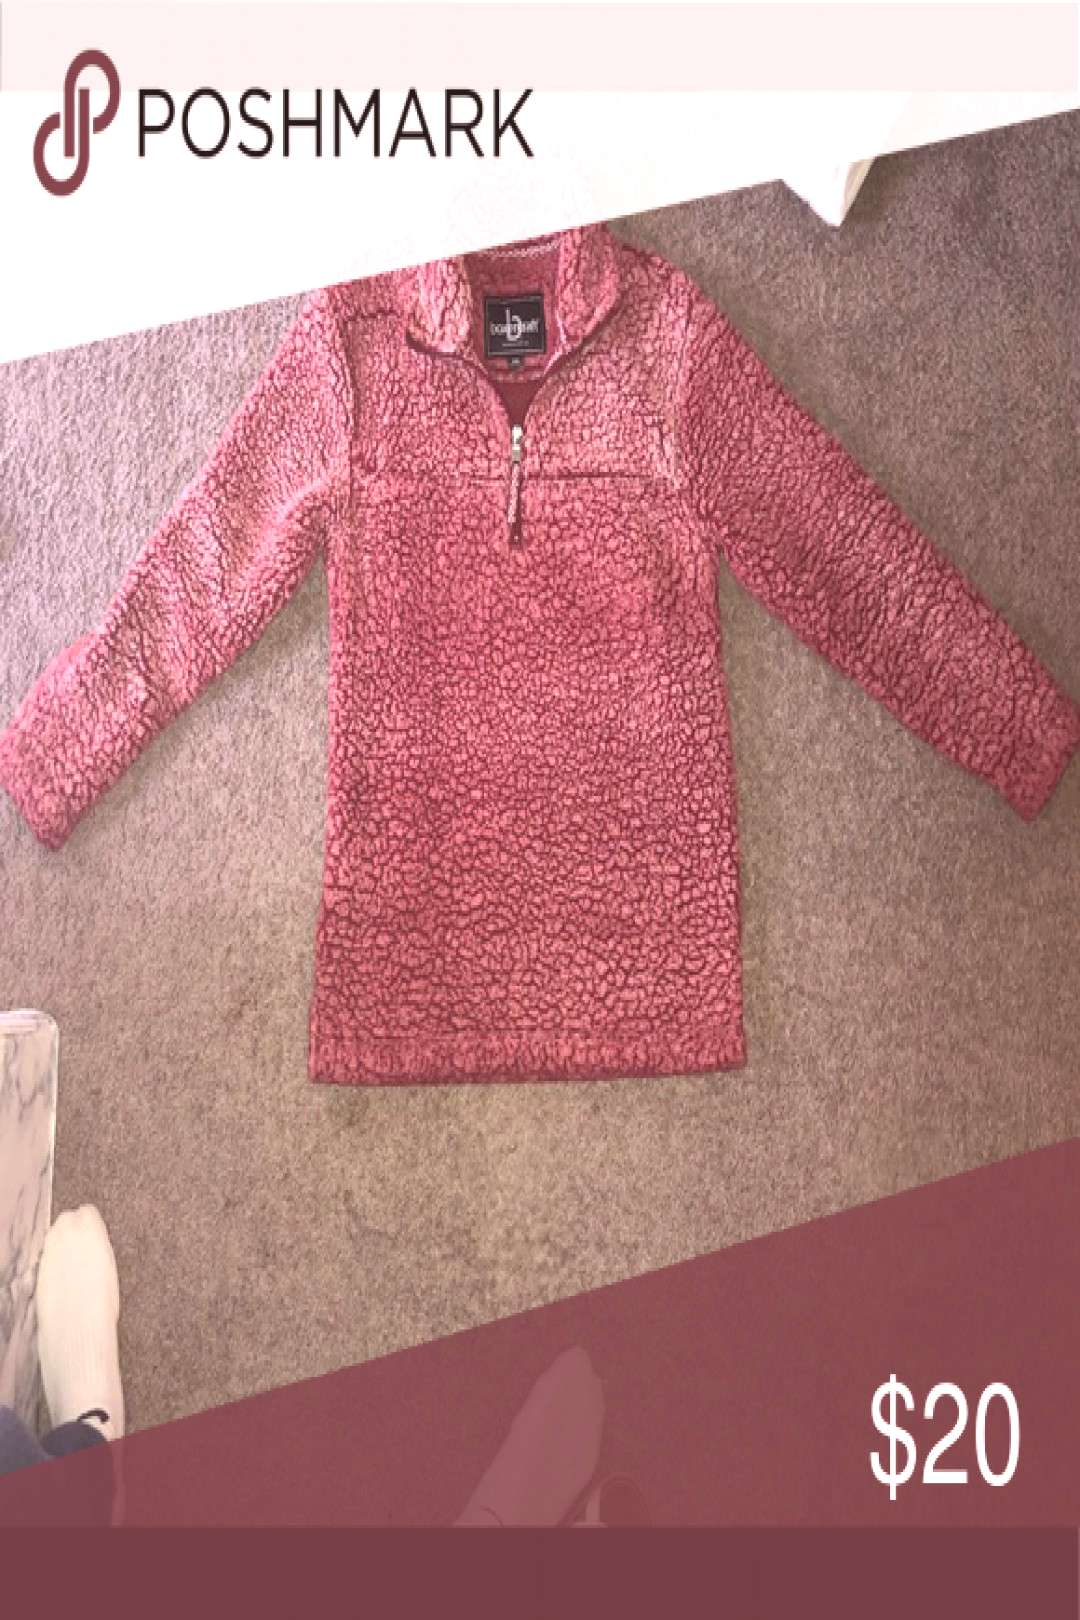 1/2 zip Pullover Sherpa  1/2 zip Pullover   super cute amp cozy   Price is negotiable ! )  • open